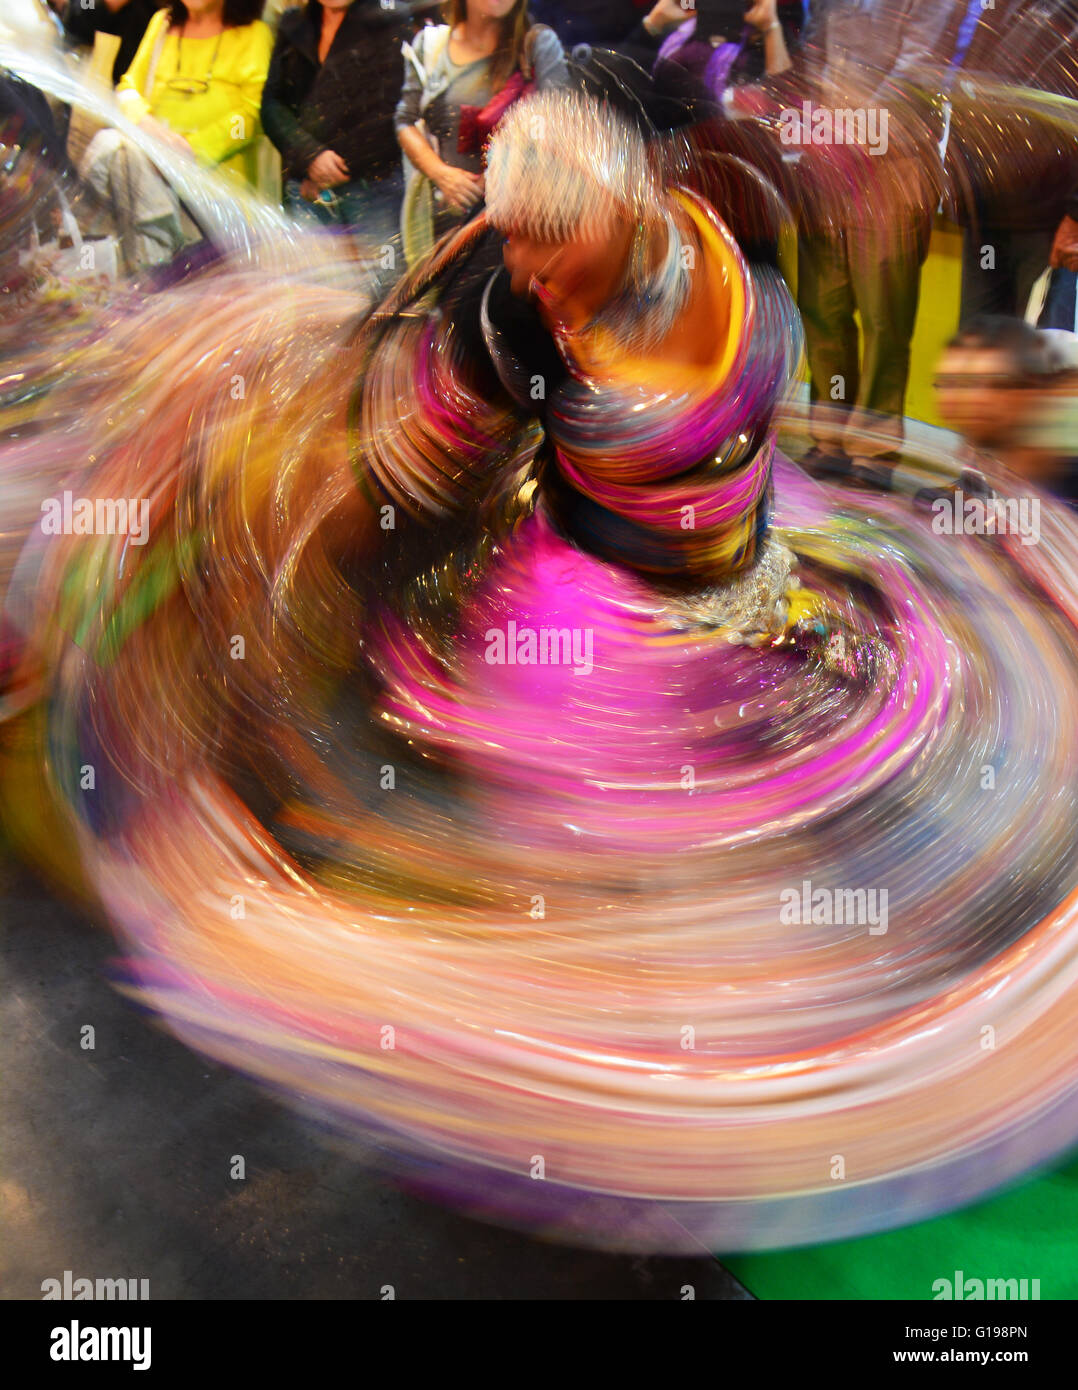 East Indian dance, blurred motion, - Stock Image